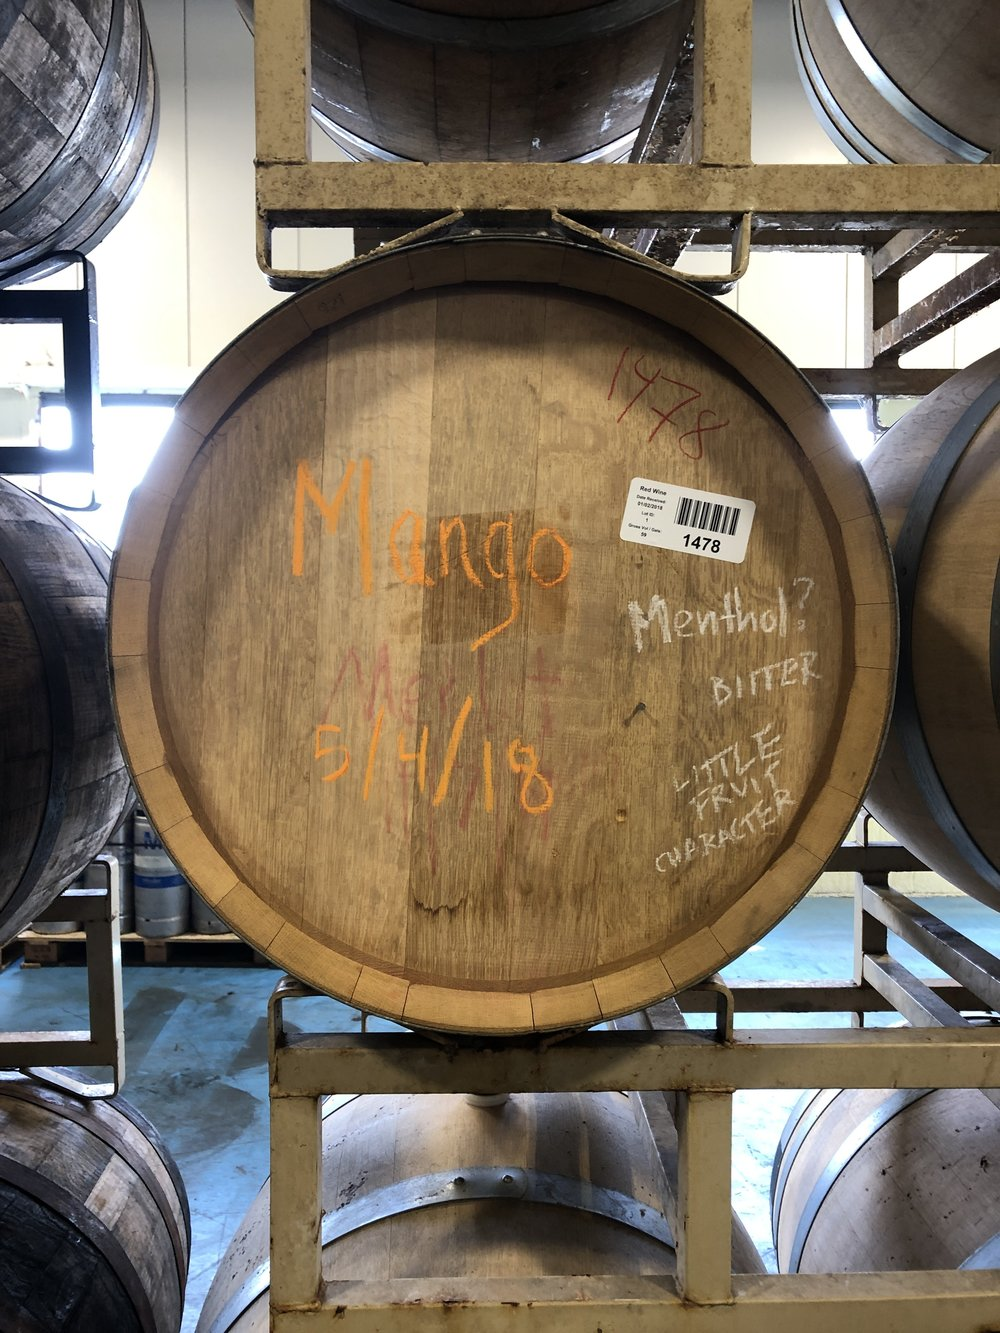 Tasting notes are written in chalk, right on the barrel. -